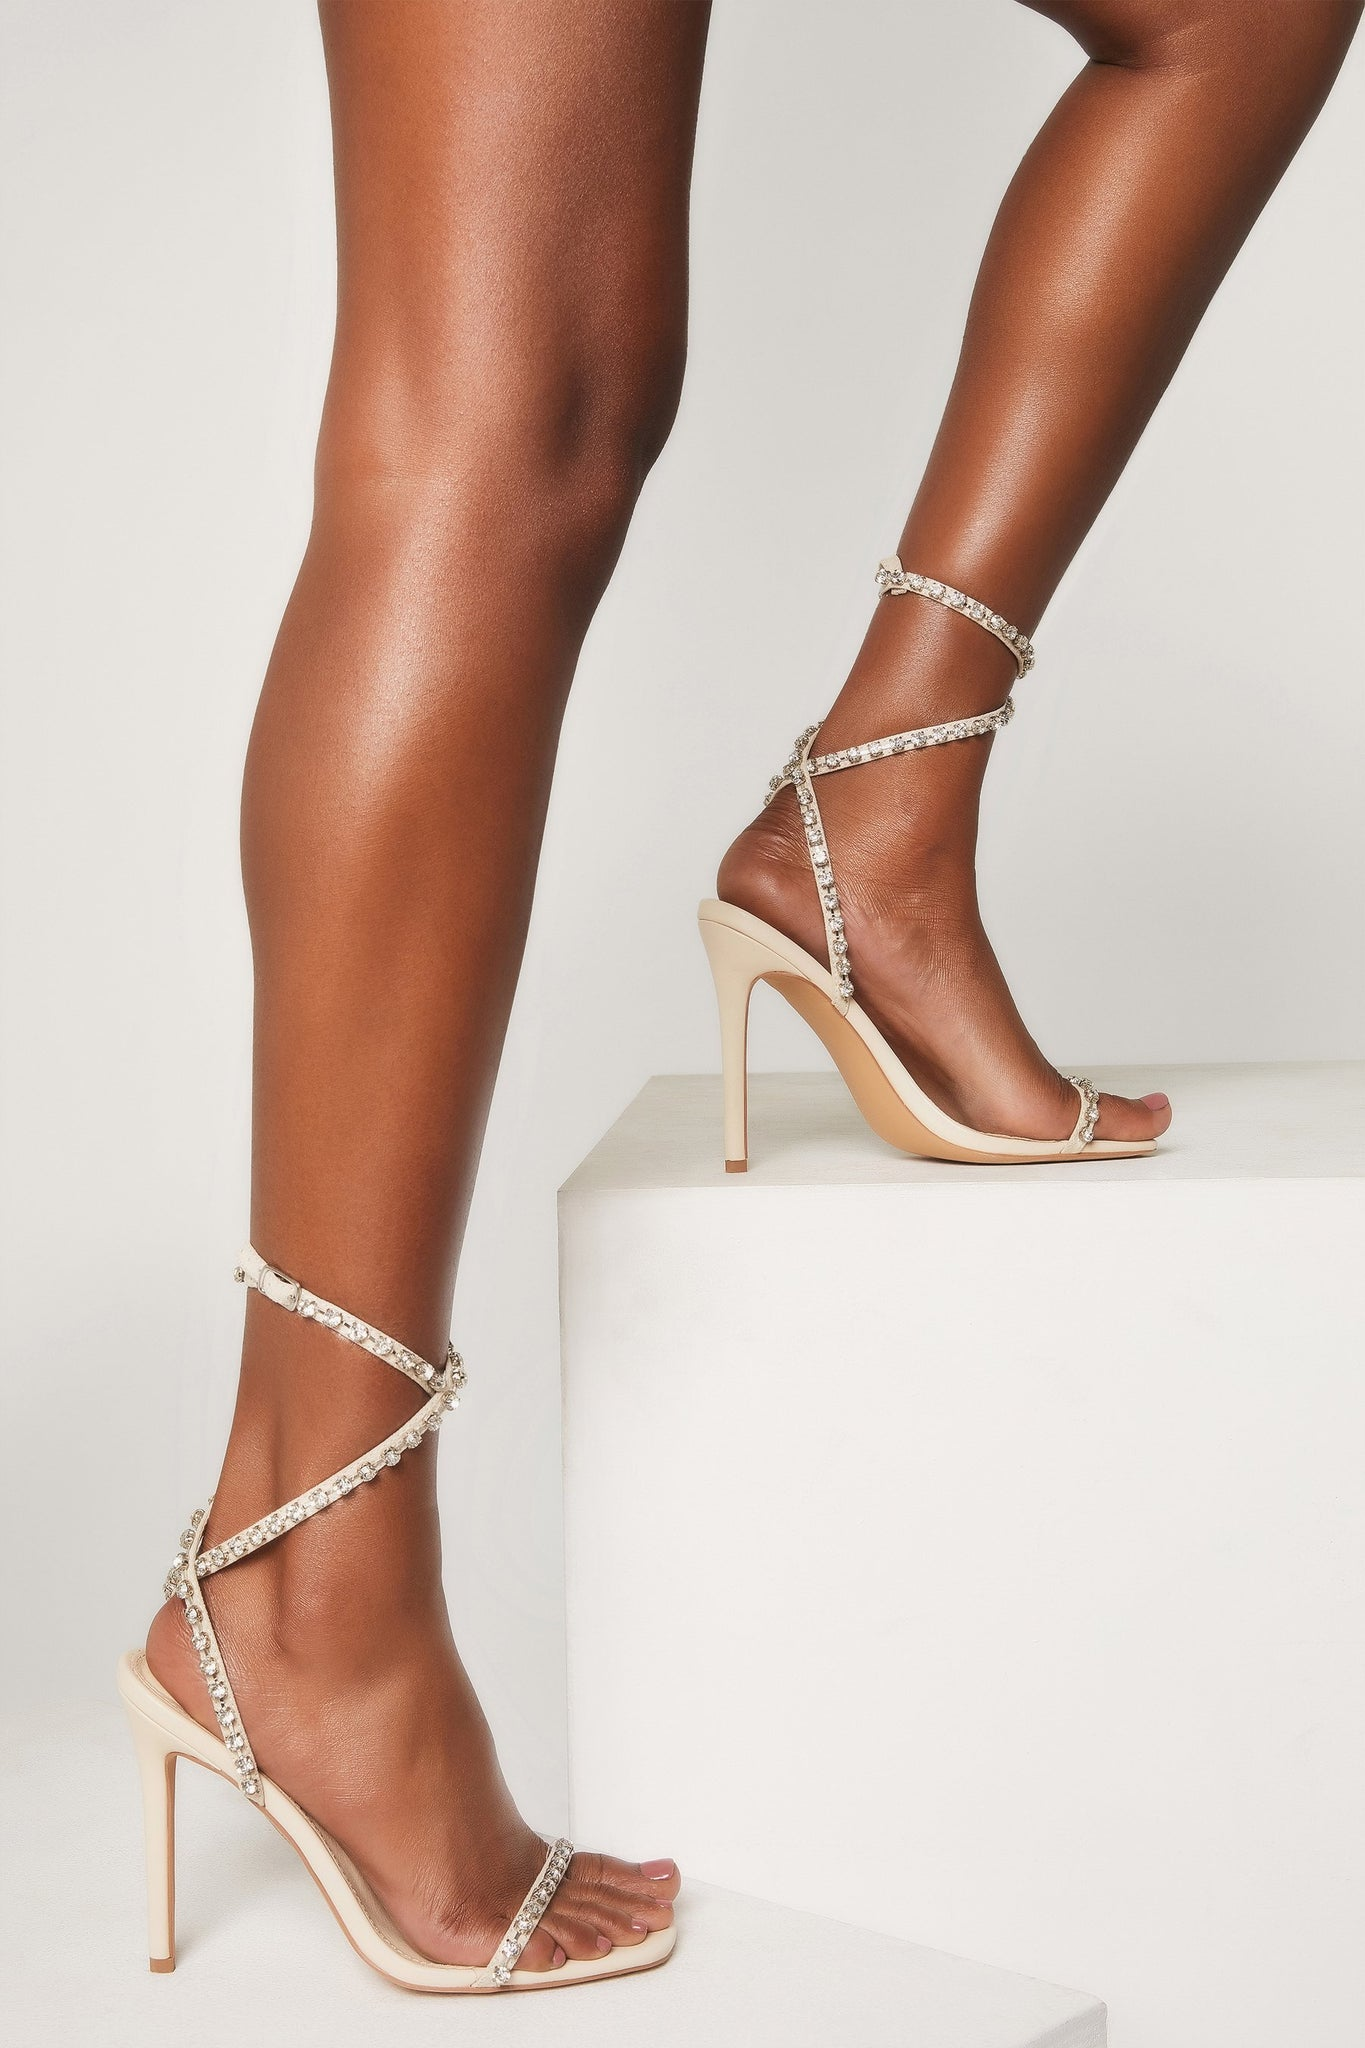 Ora Diamante Strap High Heel Sandals - Nude - MESHKI